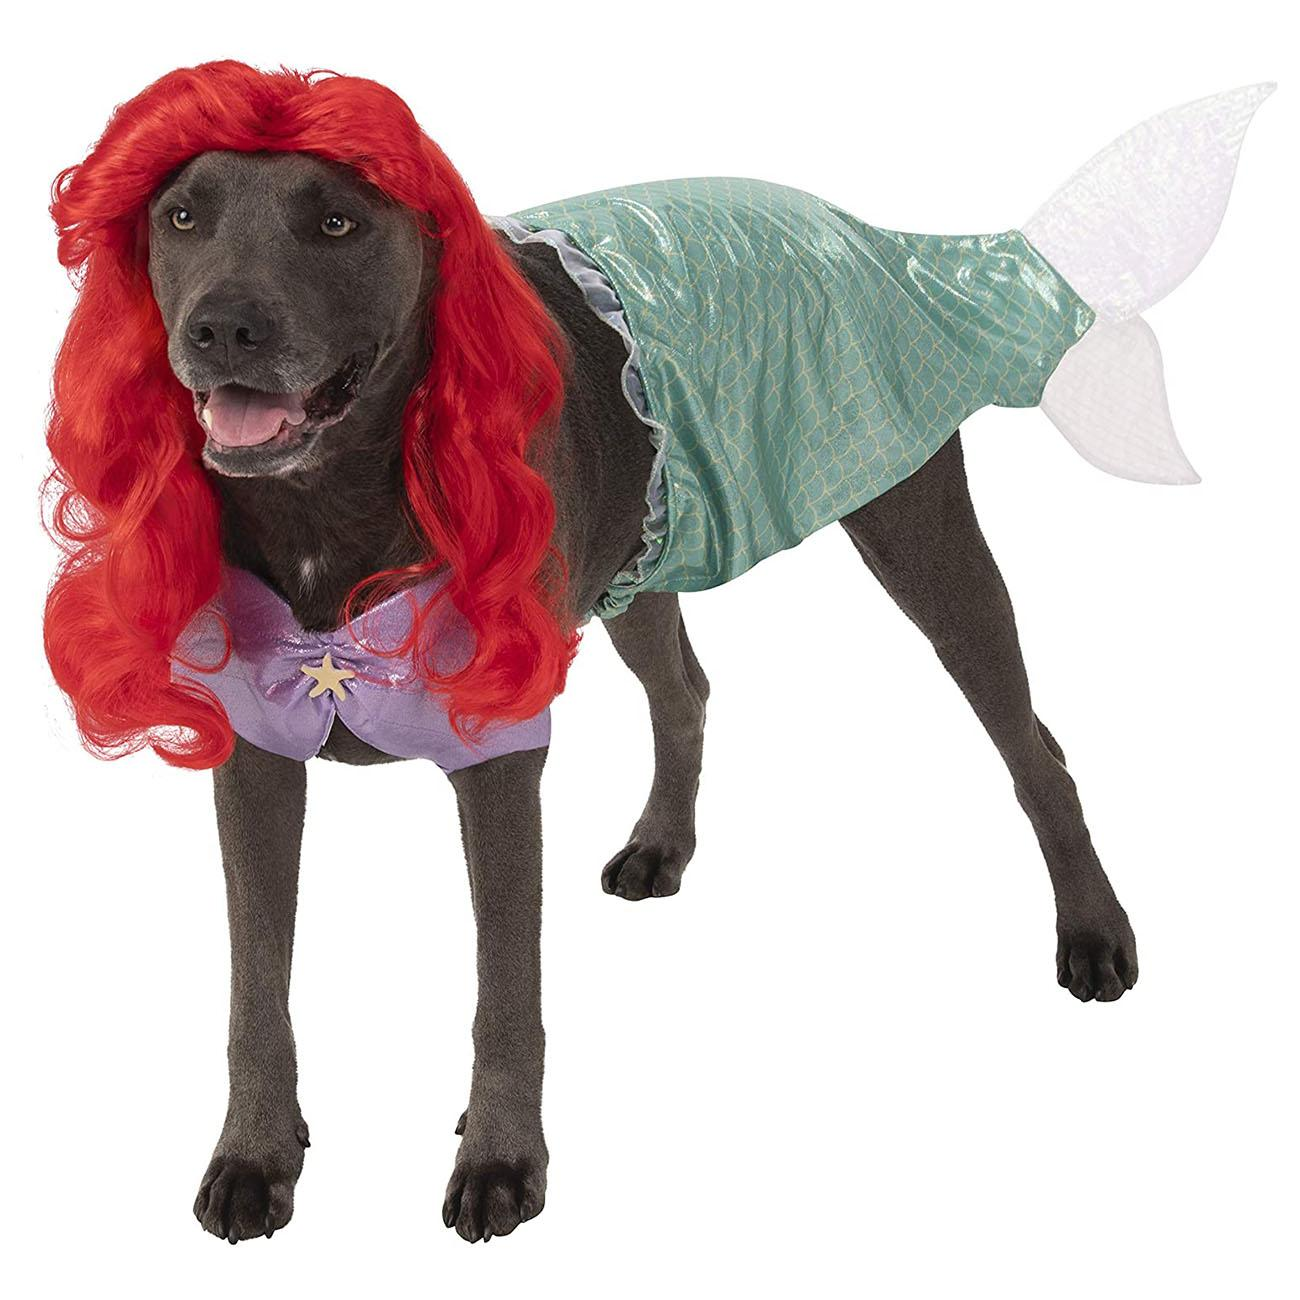 Disney's Big Dog The Little Mermaid Ariel Dog Costume by Rubie's